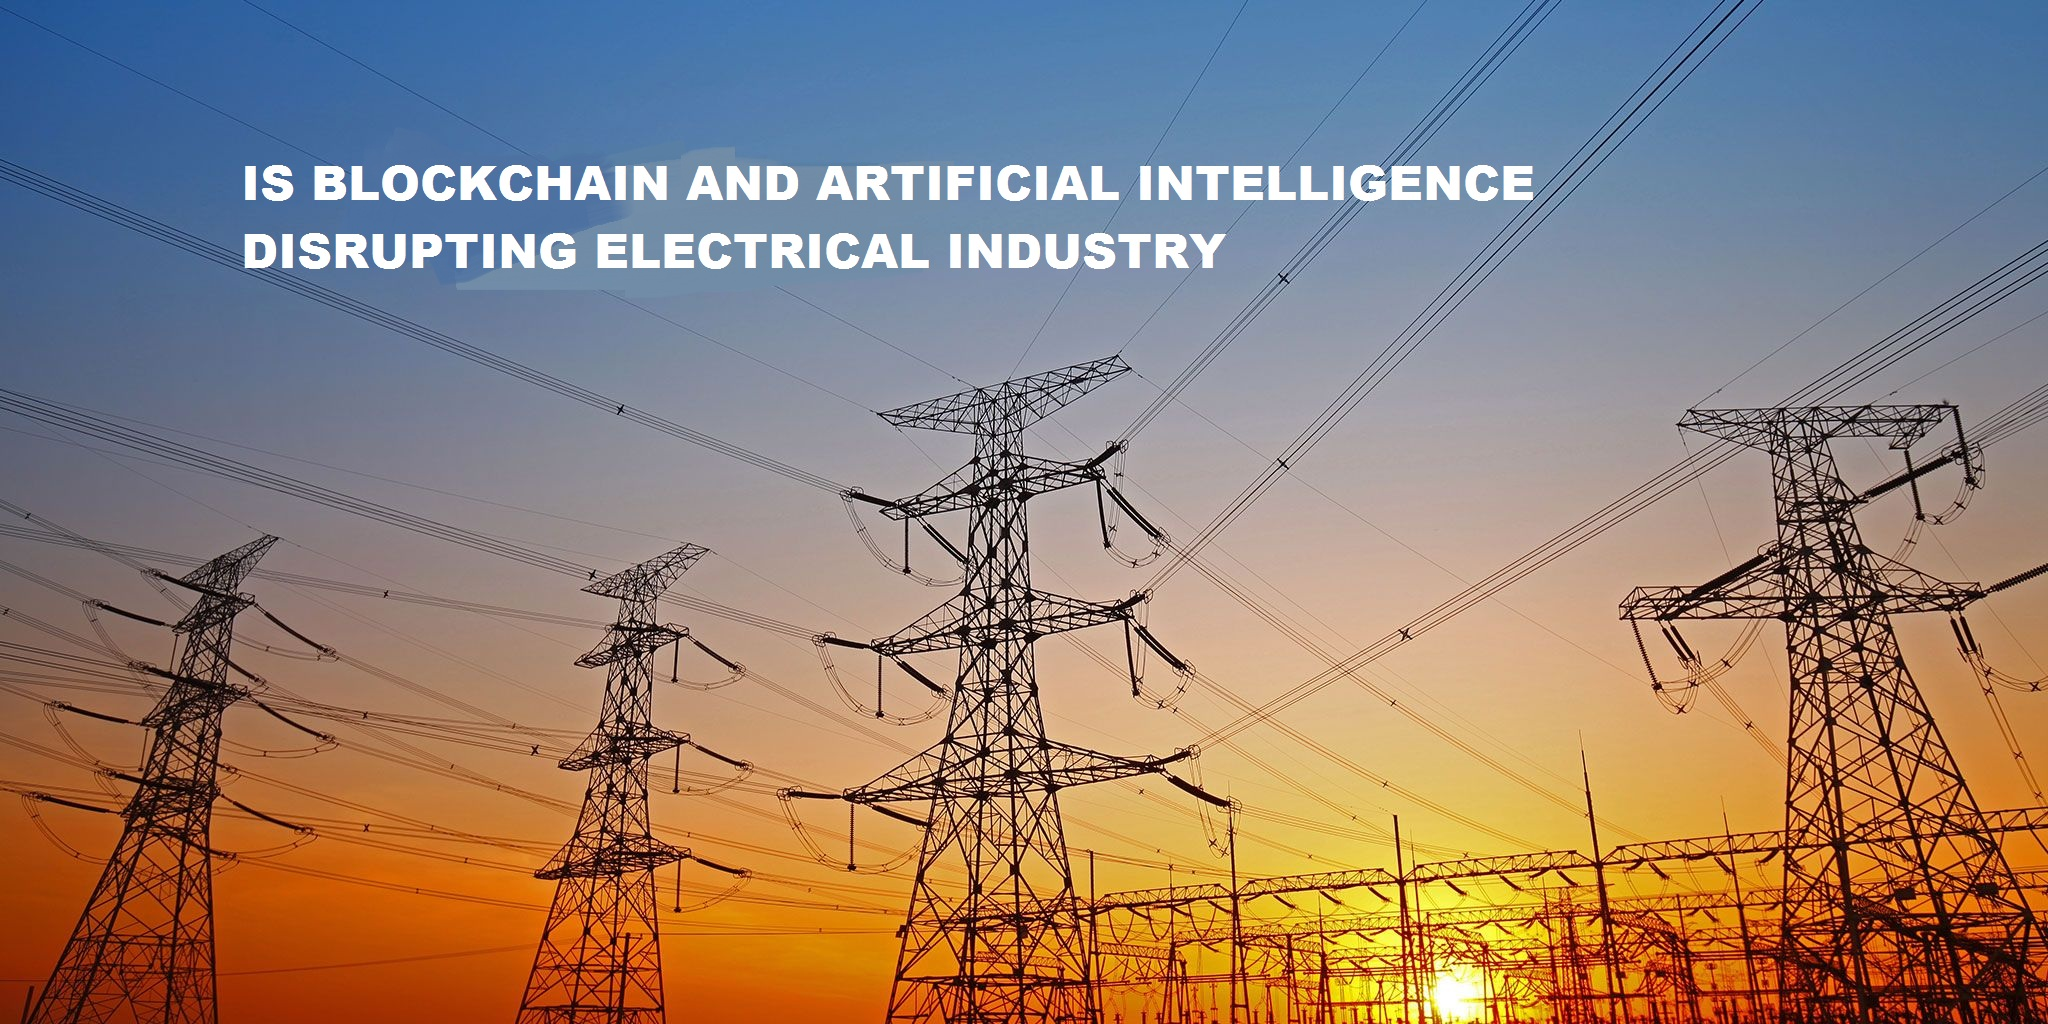 Blockchain Technology and AI disrupting electrical Industry